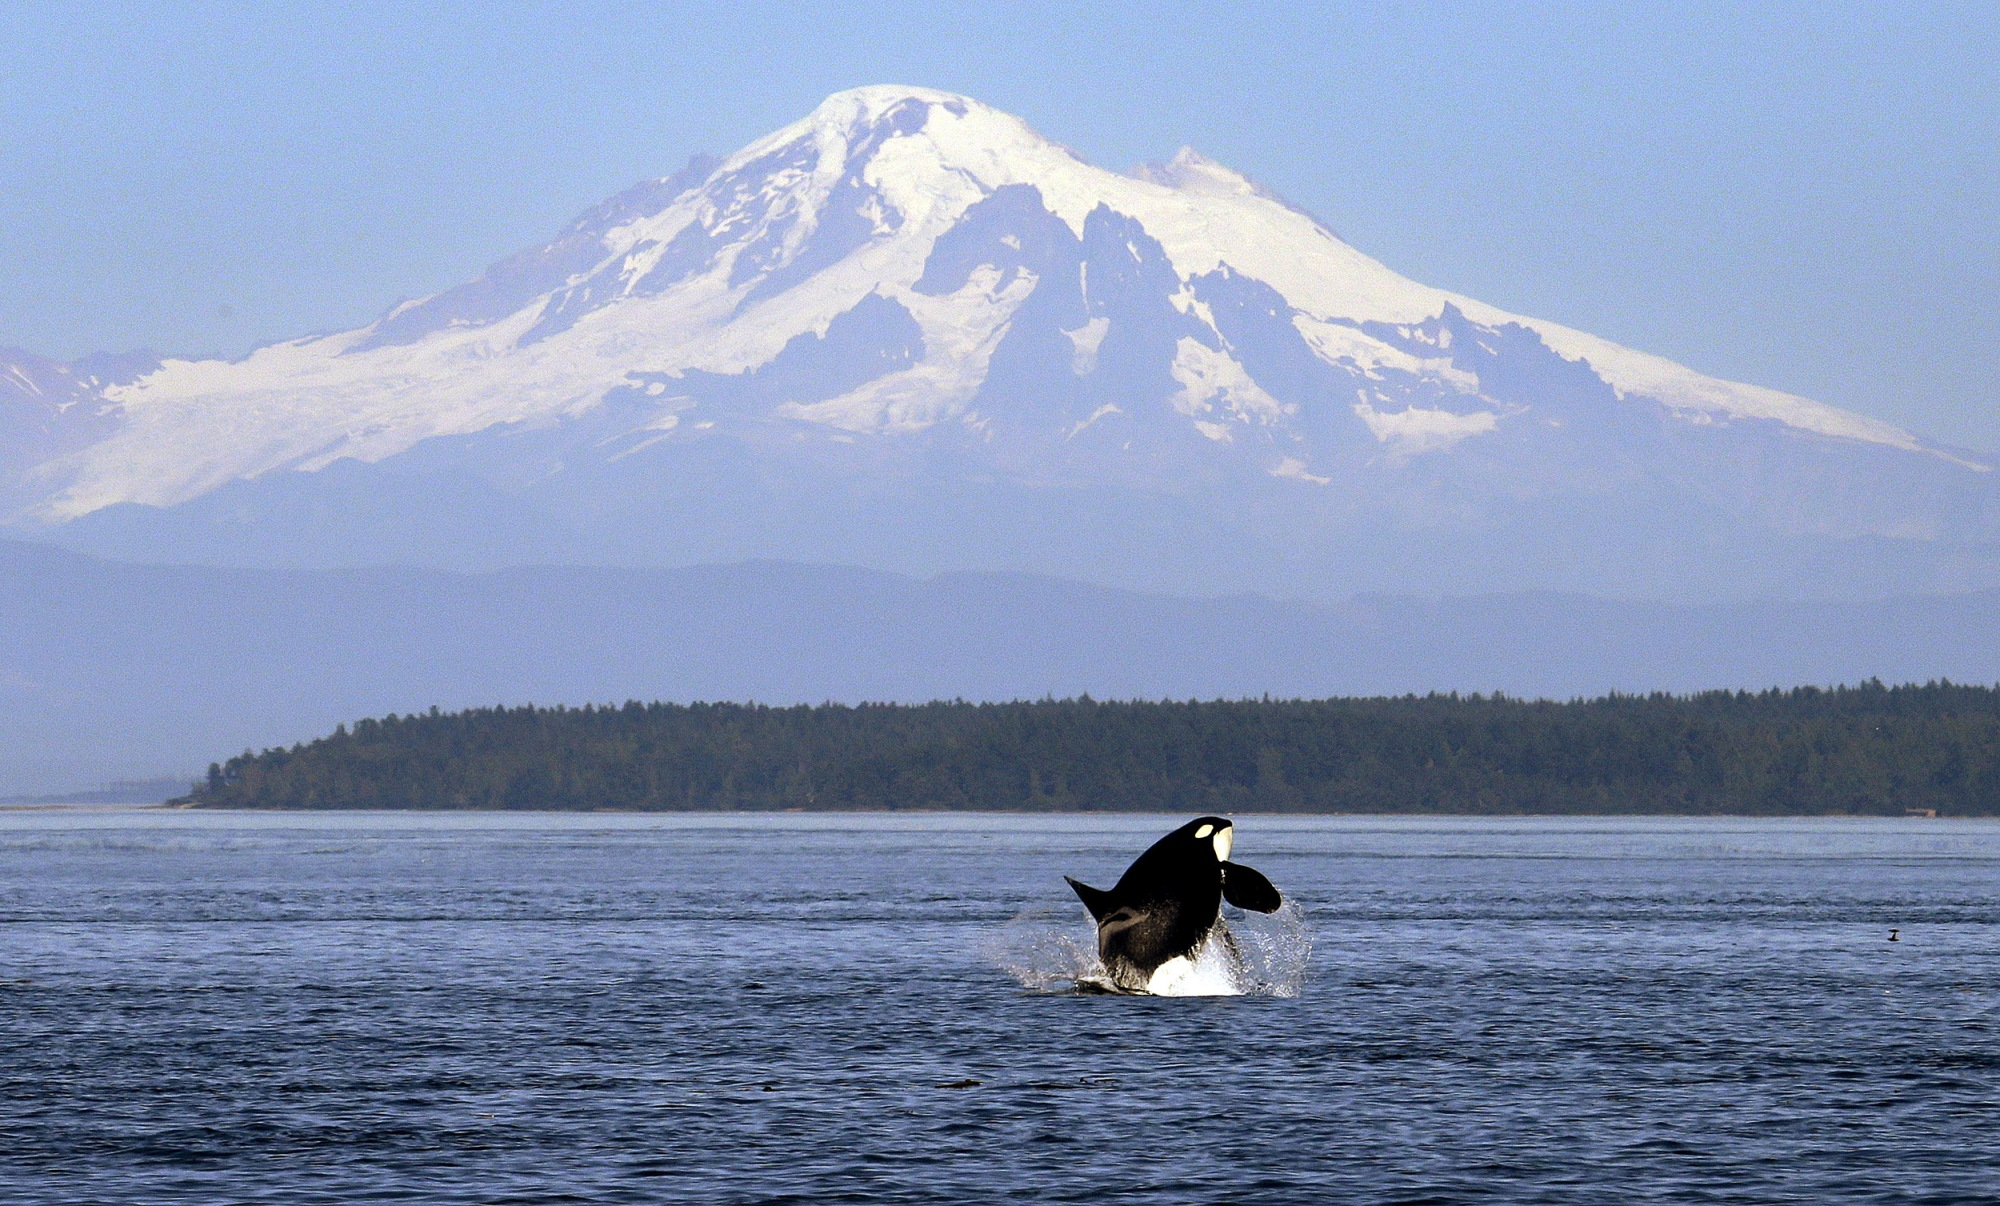 An orca breaches in view of Mount Baker, some 60 miles distant, in the Salish Sea in the San Juan Islands, Washington on July 31, 2015.